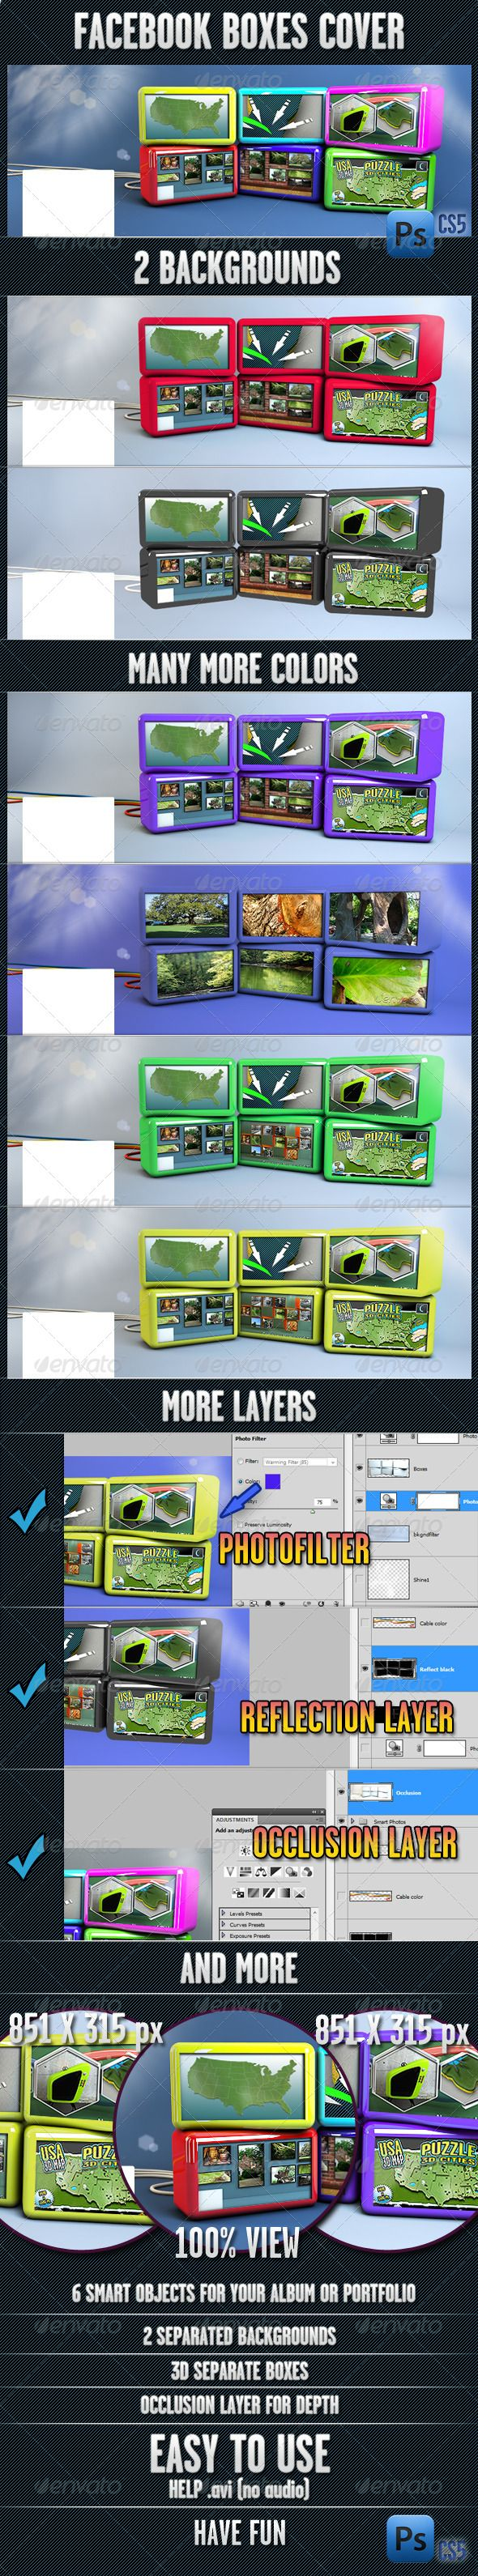 Facebook Box Cover   #GraphicRiver         Facebook boxes cover 2 backgrounds. Many more colors. More layers. 6 smart objects for your album or portfolio. 2 separated backgrounds. 3D separate boxes. Occlusion layer for depth. Easy to use. Help .avi (no audio).   .youtube /watch?v=69JpSMYM7LI&feature=share&list=PLT3YhTPn0EmRnWEfMh9WlNDw5N085w0CN 	 Photoshop CS5. Have fun.     Created: 27March13 GraphicsFilesIncluded: PhotoshopPSD HighResolution: No Layered: Yes MinimumAdobeCSVersion: CS5…